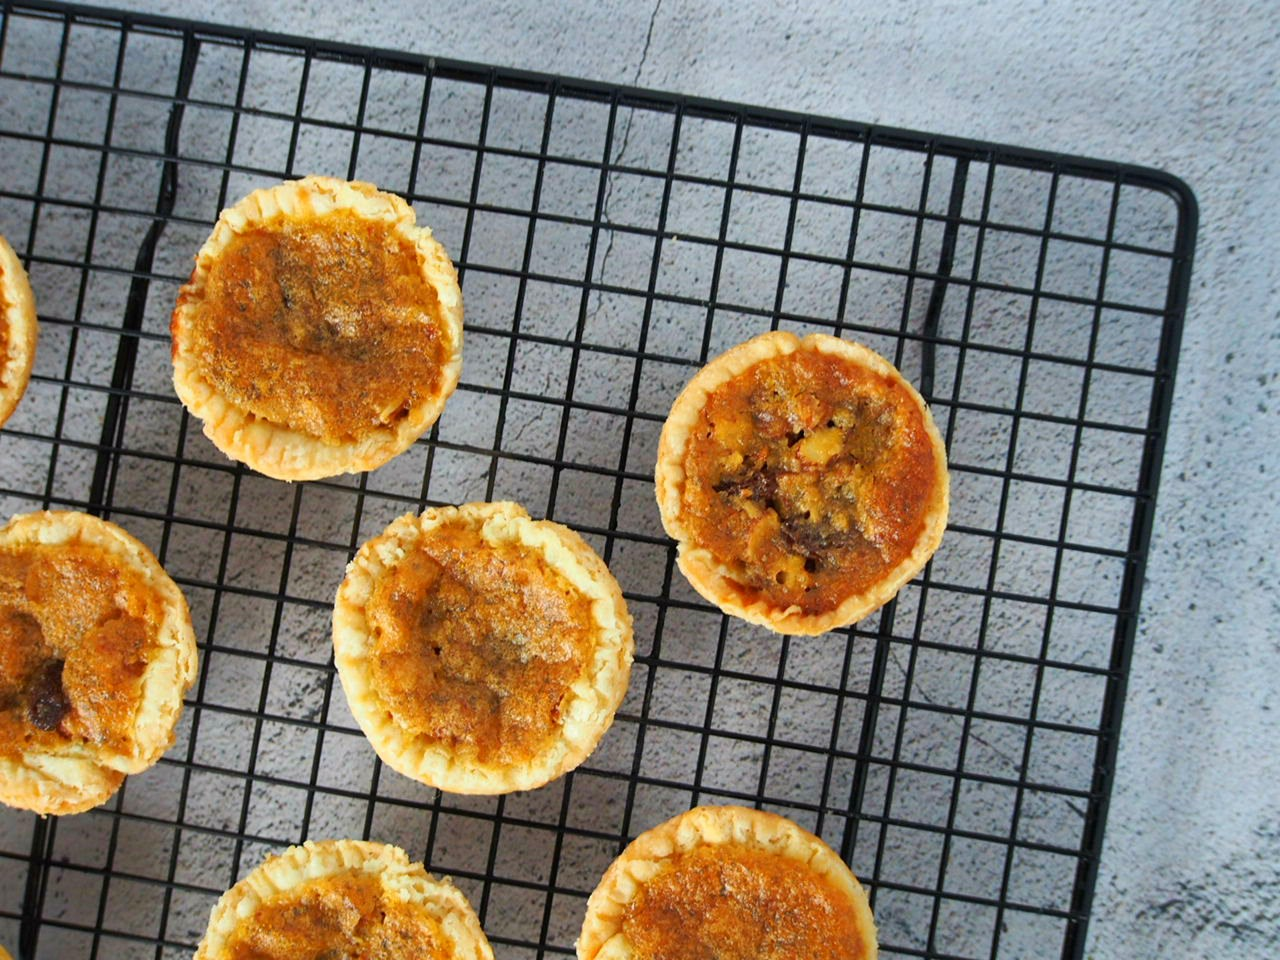 cooling the butter tarts on a wire rack.